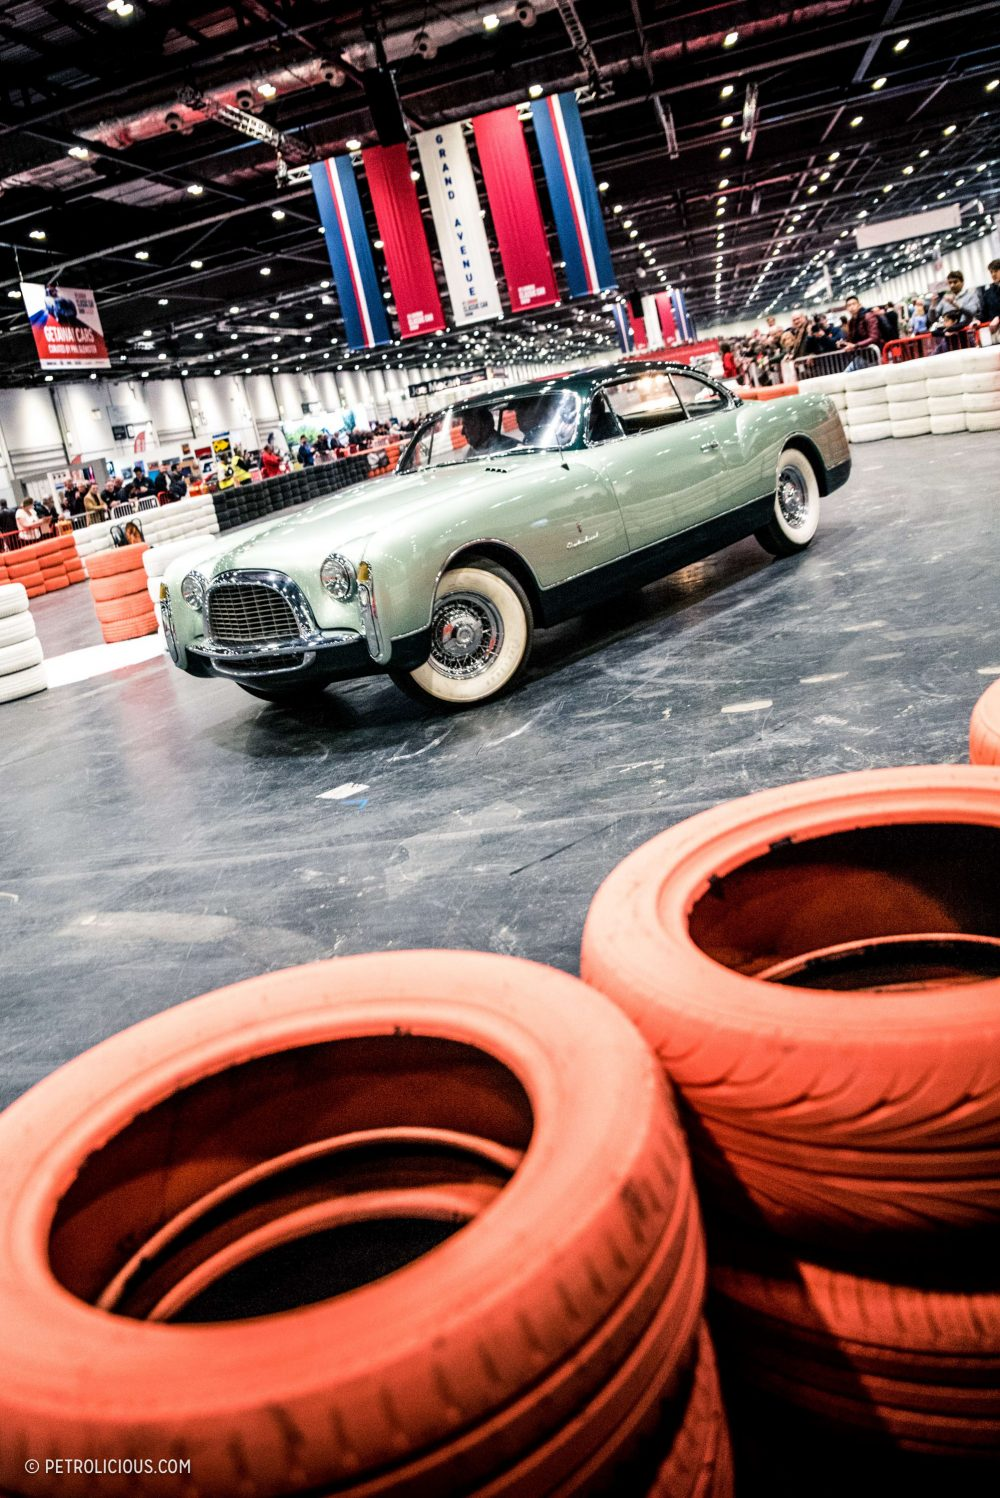 EVENTS Previewing The Weekend Ahead At The London Classic Car Show - Car show wheel display stands